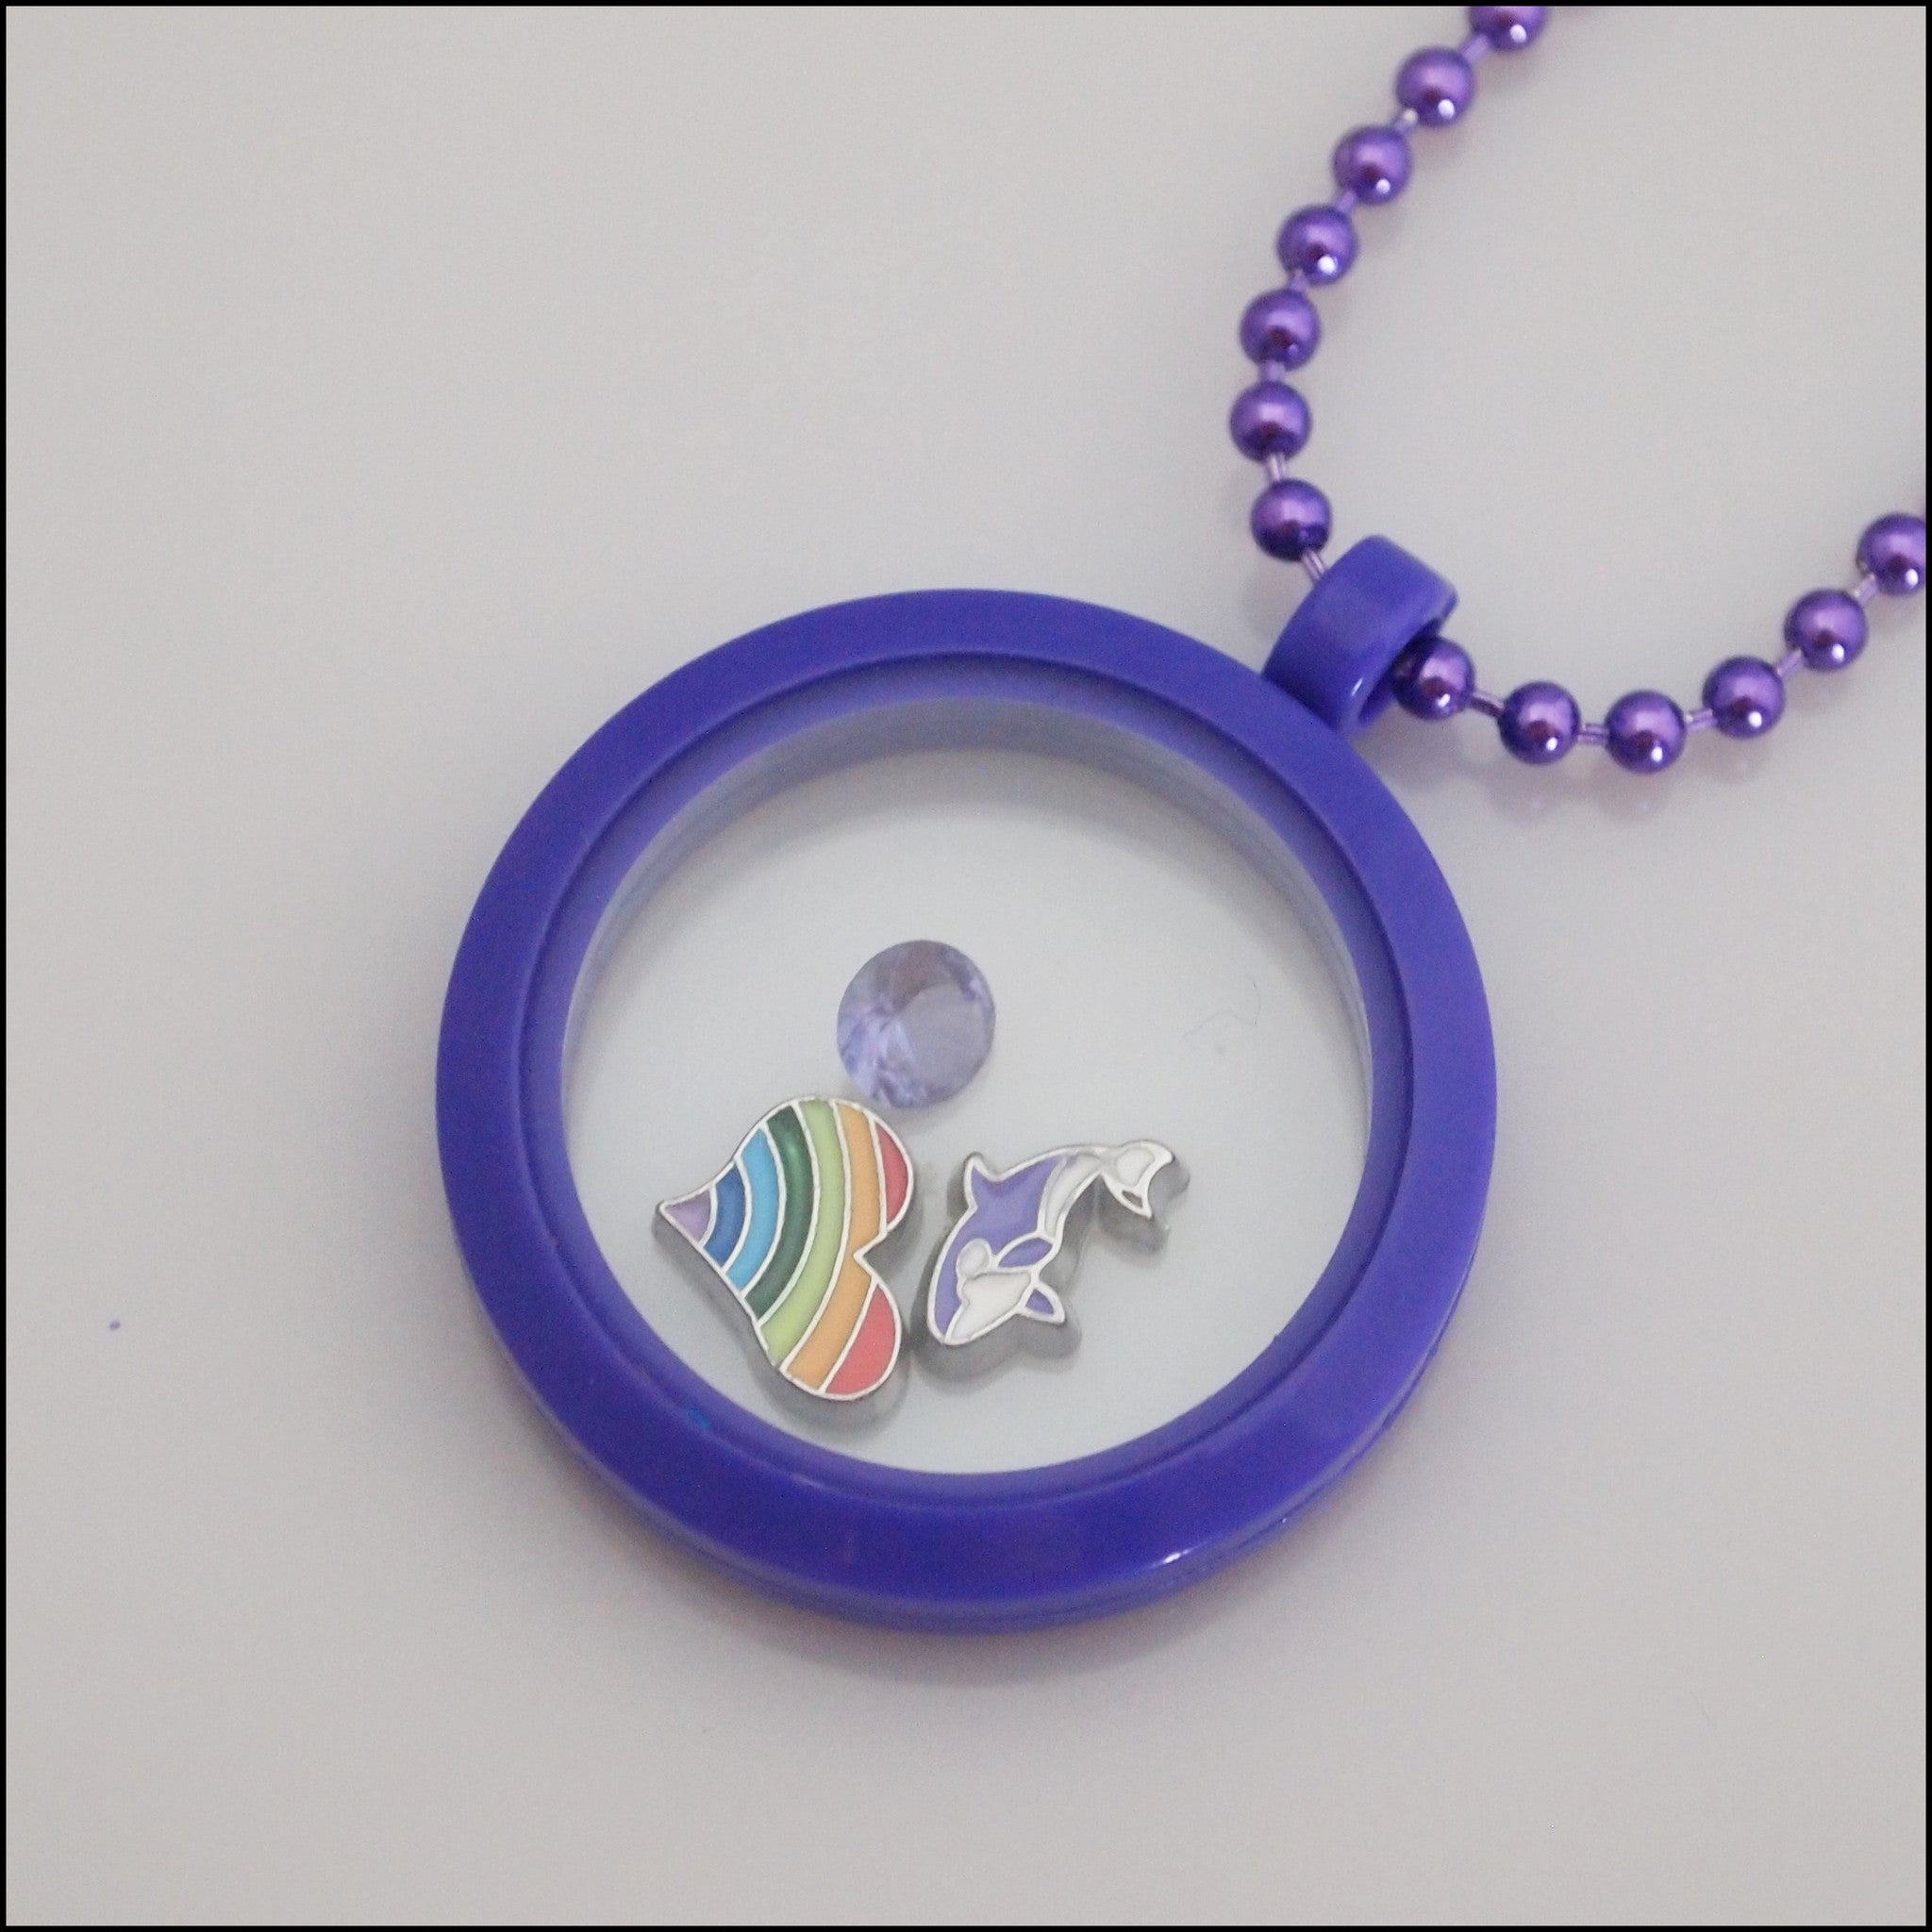 Acrylic Magnetic Living Locket - Purple - Find Something Special